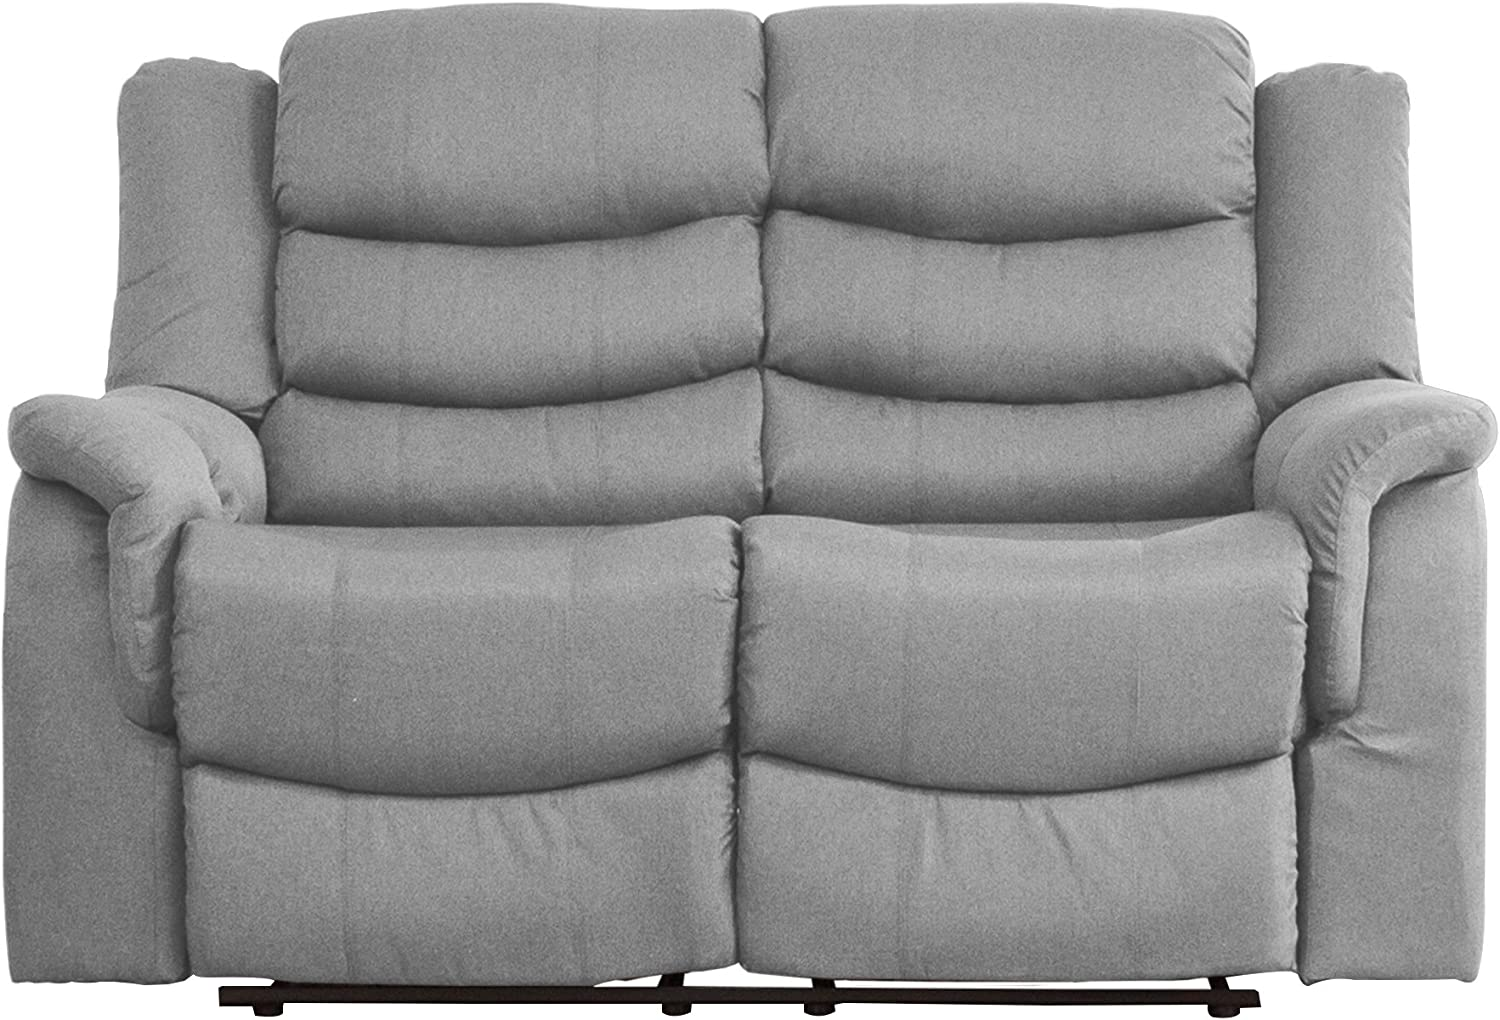 Dark Grey, 1 Seat 1//2//3//3+2//1 Riser Recliner in Woven Fabric Light Grey /& Dark Grey Sofa Collection Moselle Recliner Suite